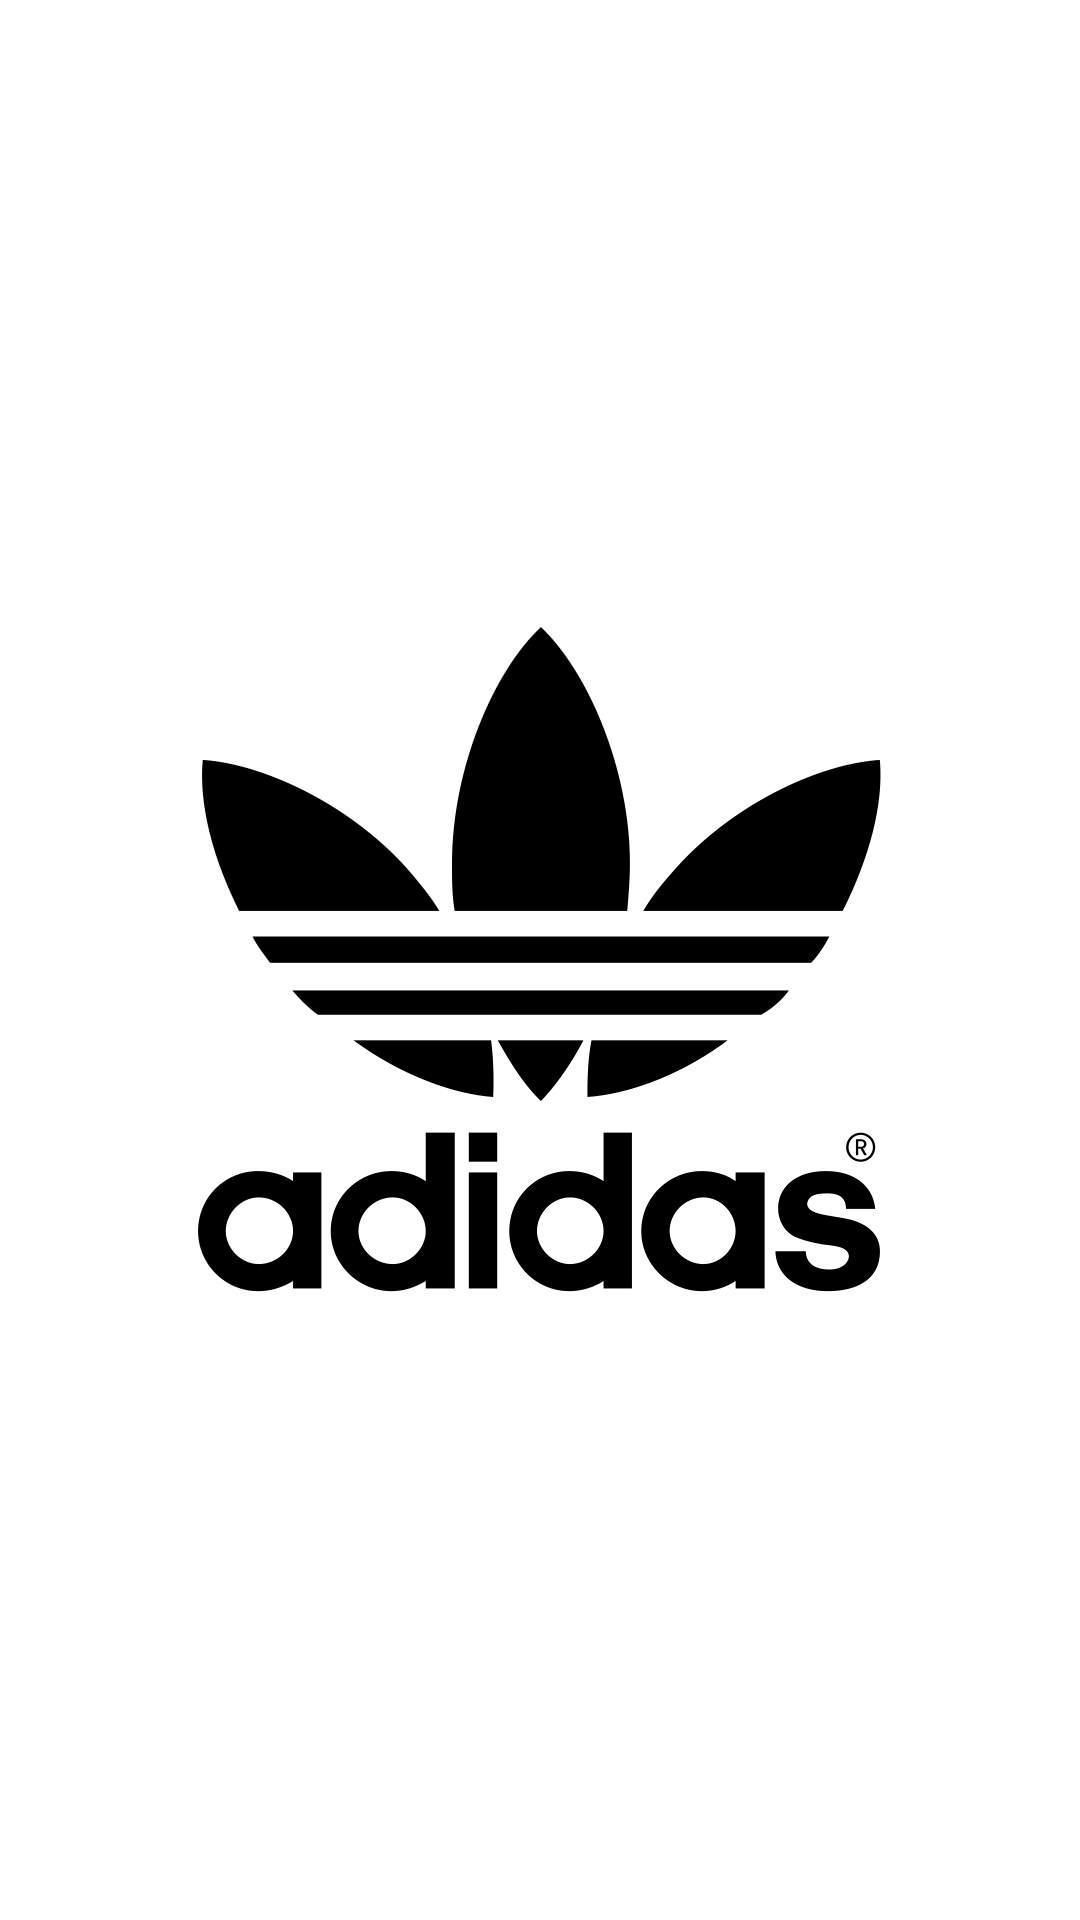 Adidas Logo - $29 on | Fashion trends | Logos, Adidas iphone wallpaper, Iphone ...